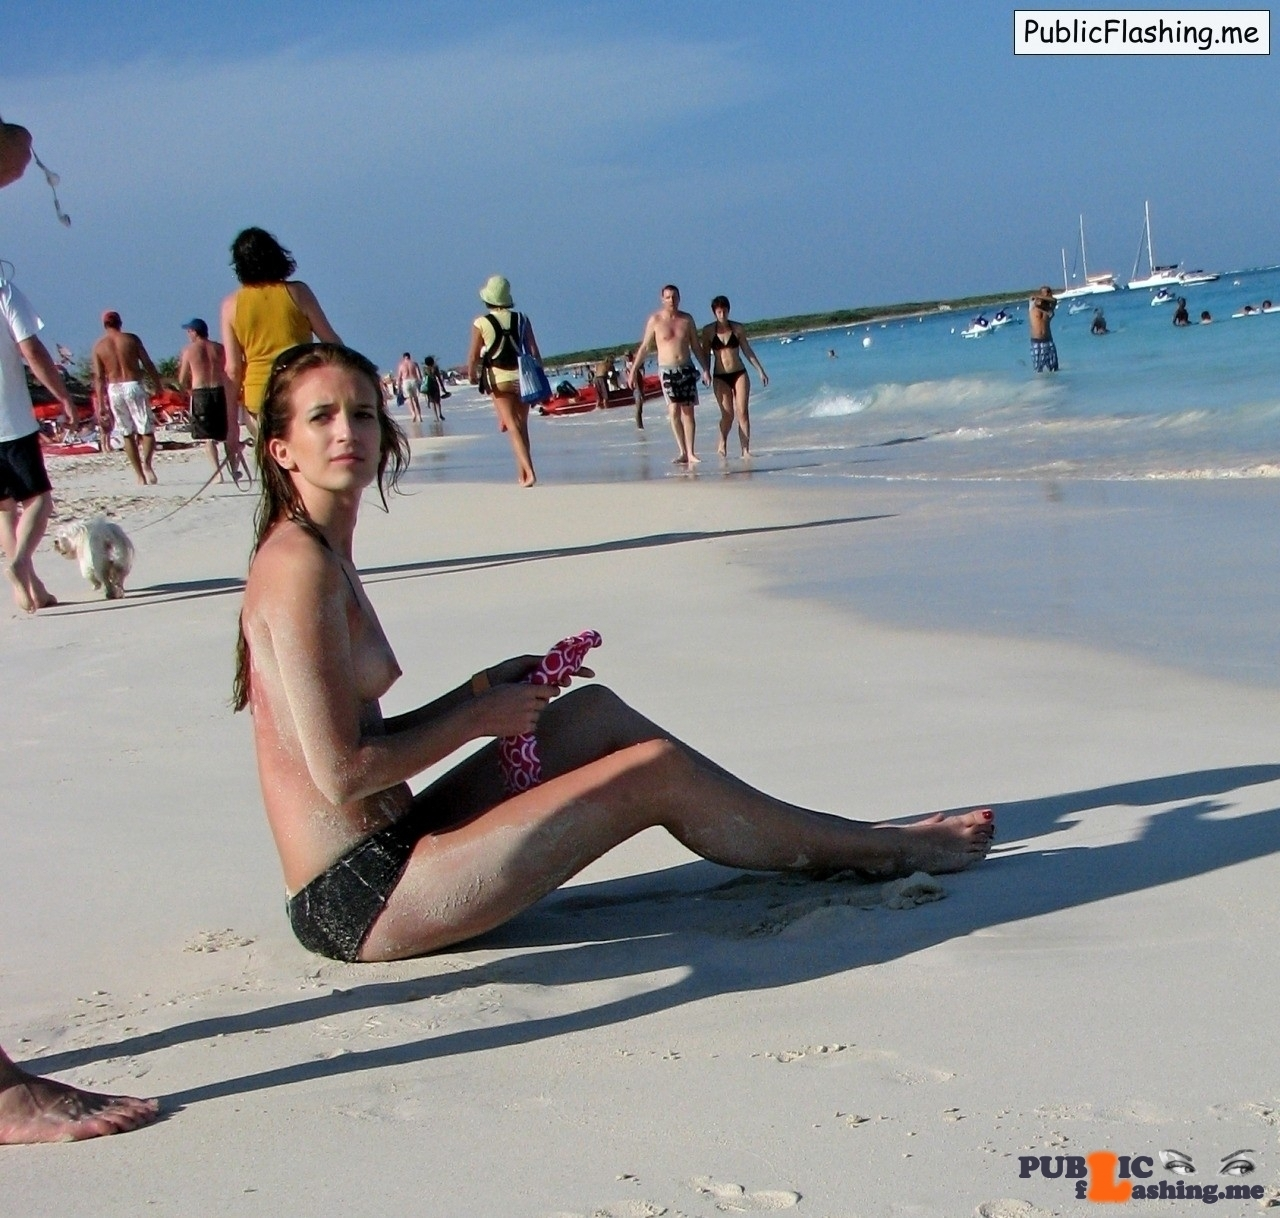 Teen brunette is sitting in the sand topless